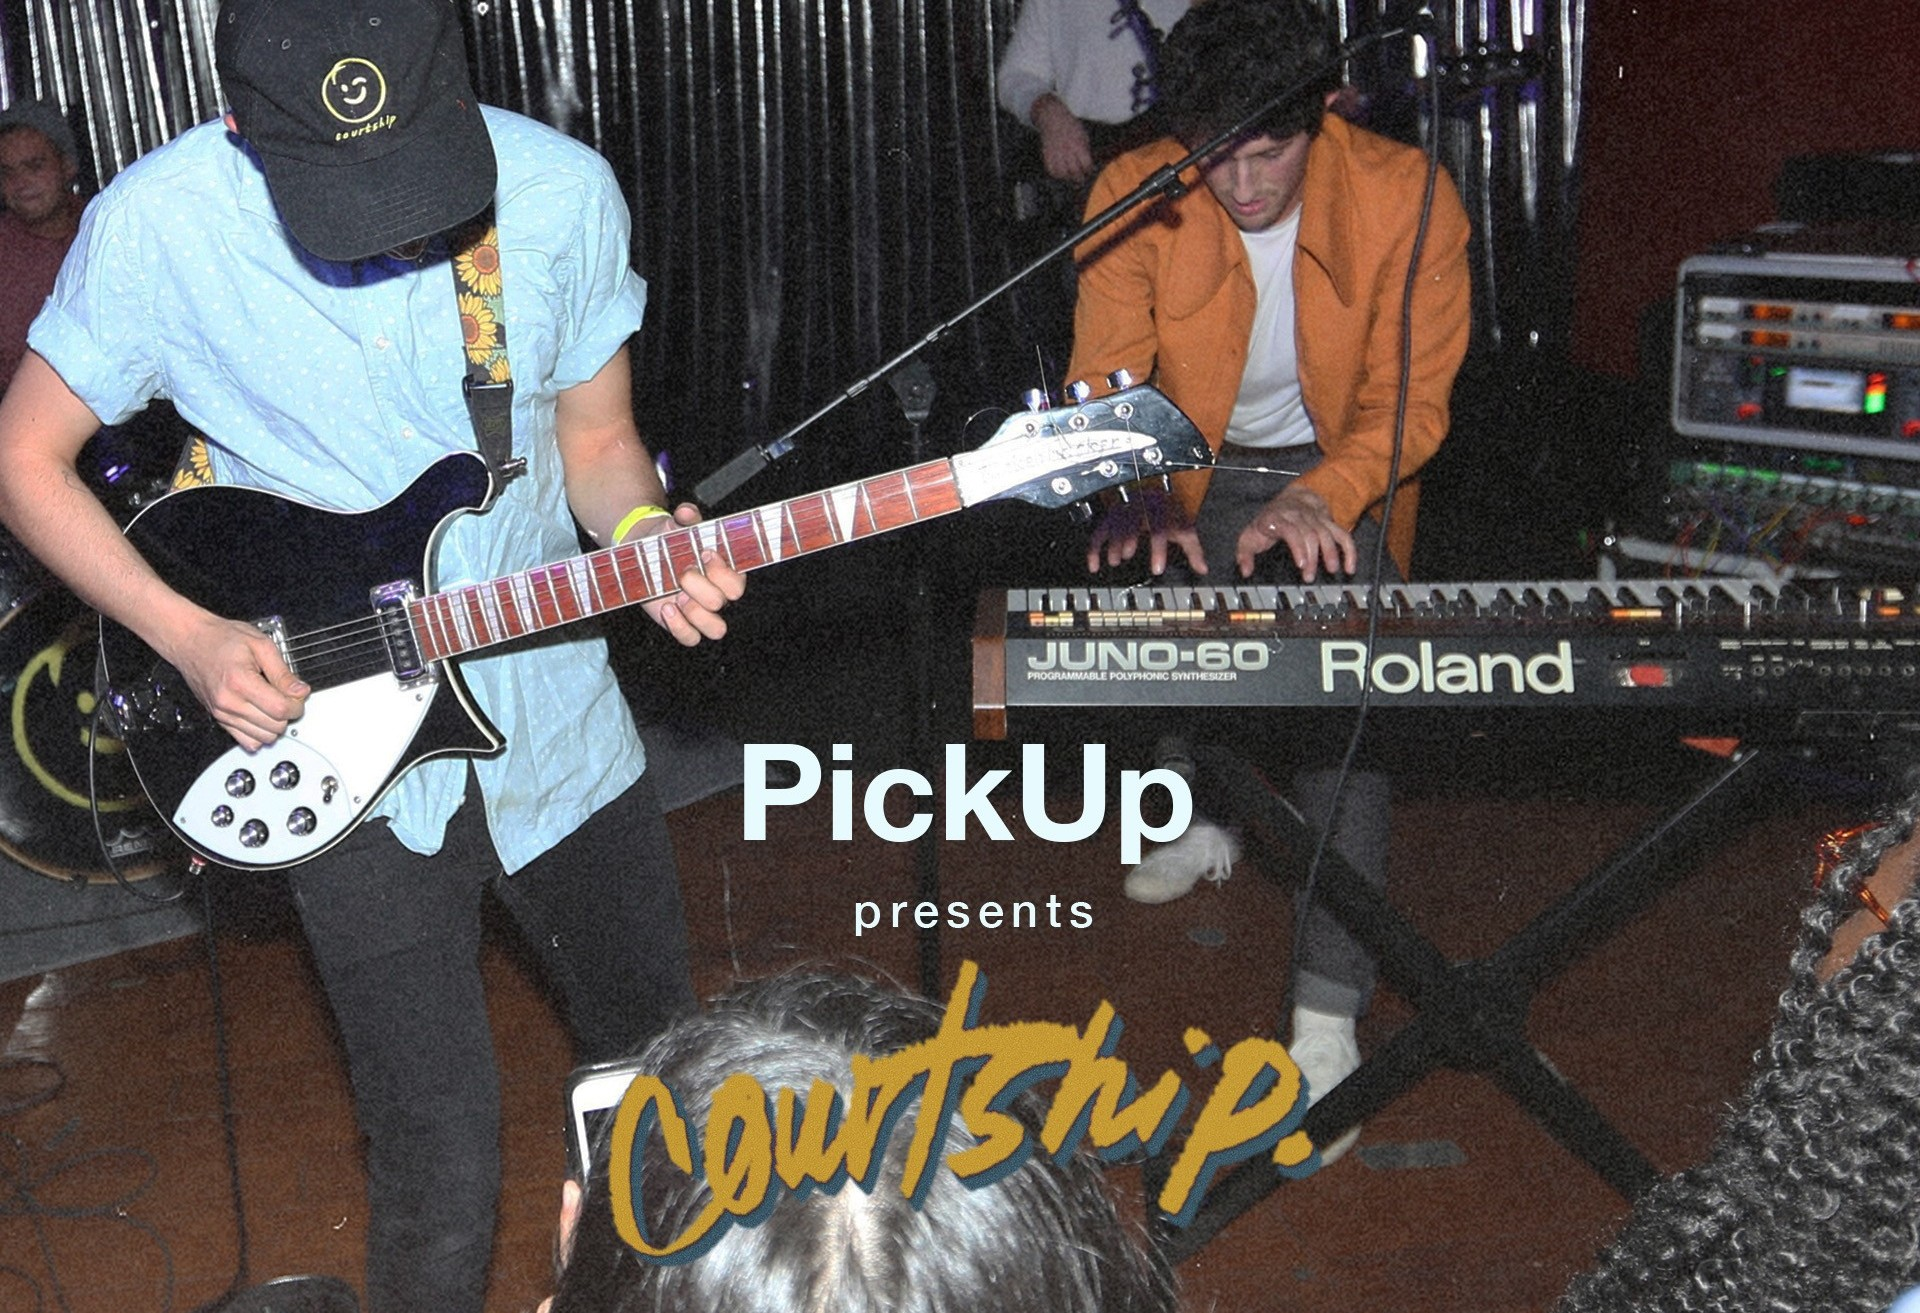 PickUp and Baby's All Right presents: COURTSHIP. Live in Brooklyn for FREE!